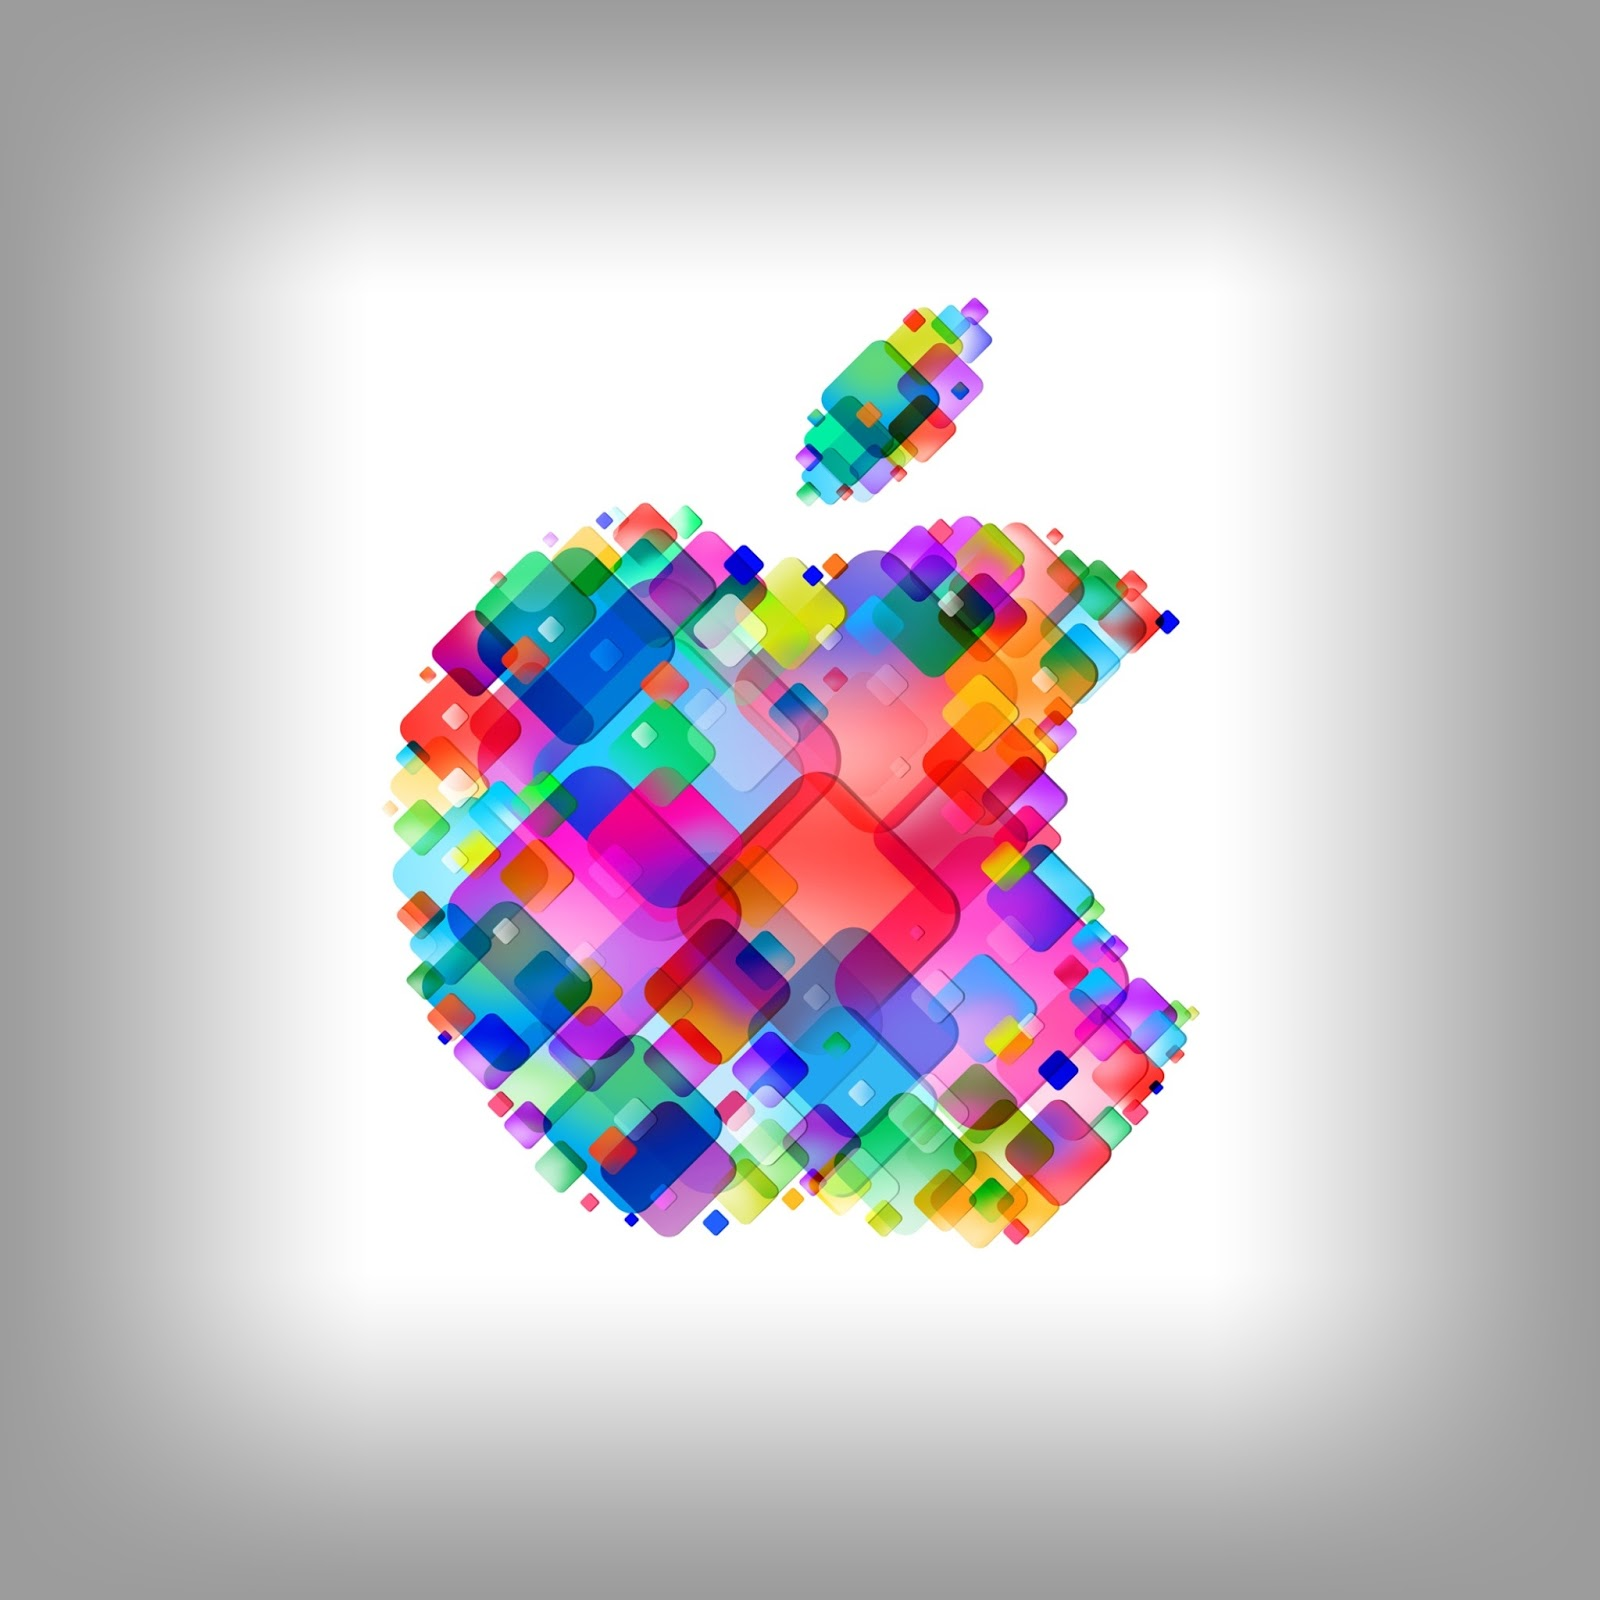 Free IPad Retina HD Wallpapers